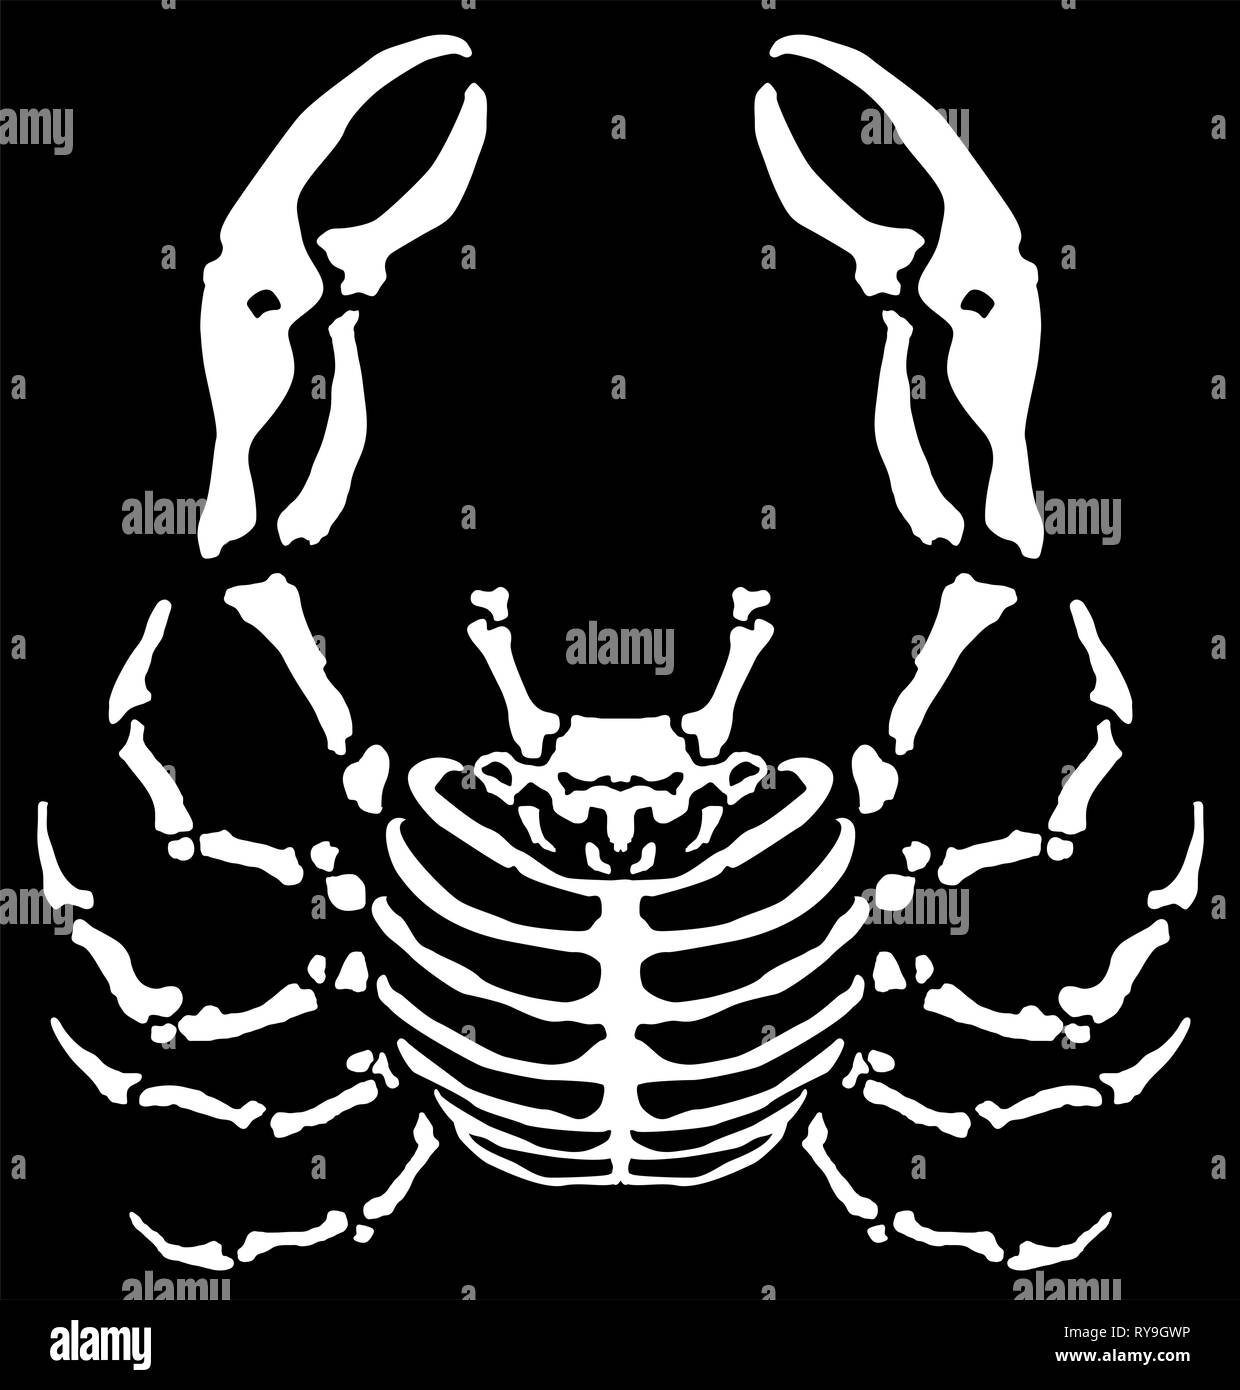 Crab animal skeleton cartoon surreal, vector illustration, horizontal, black background, isolated - Stock Vector